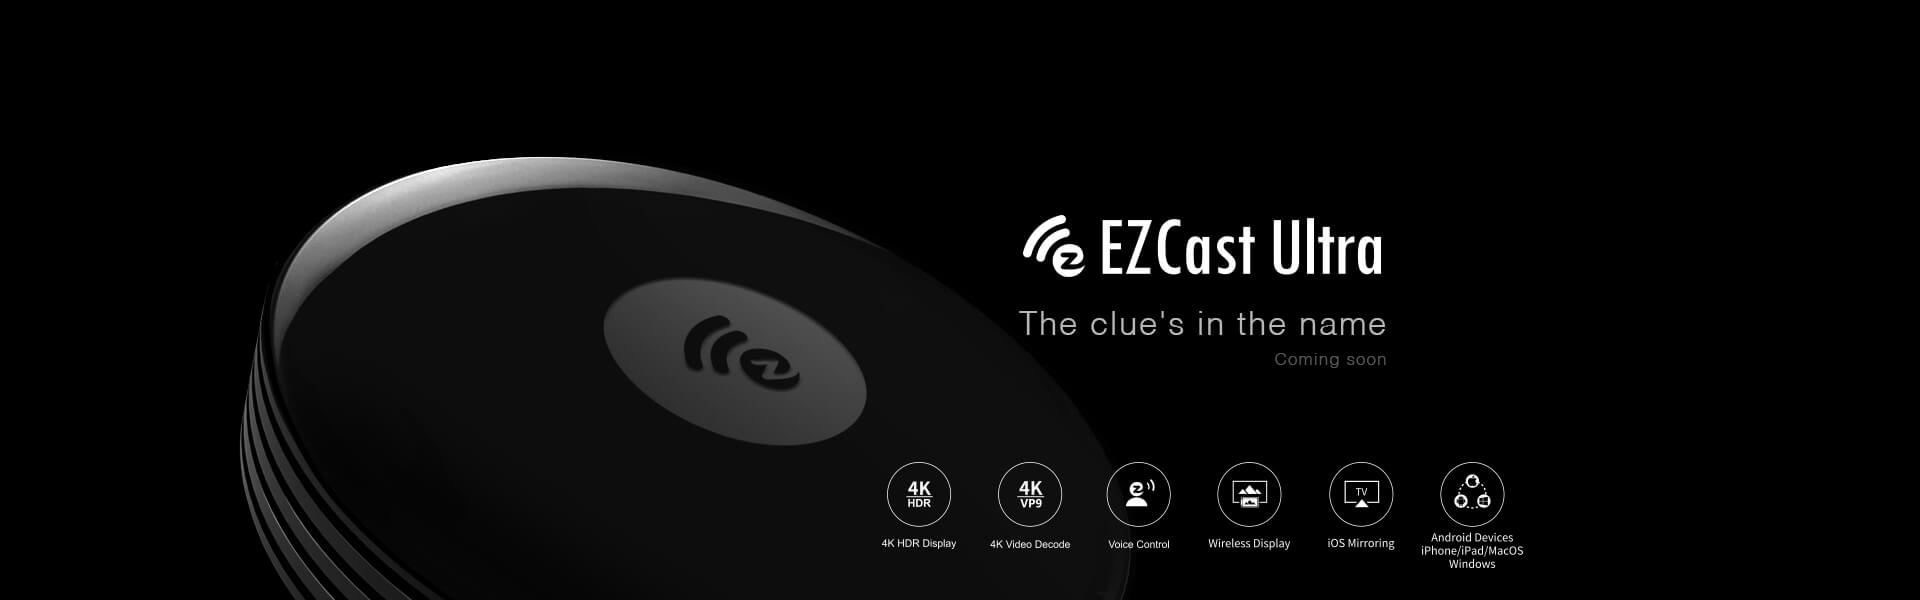 EZCast Ultra with 4K HDR output.